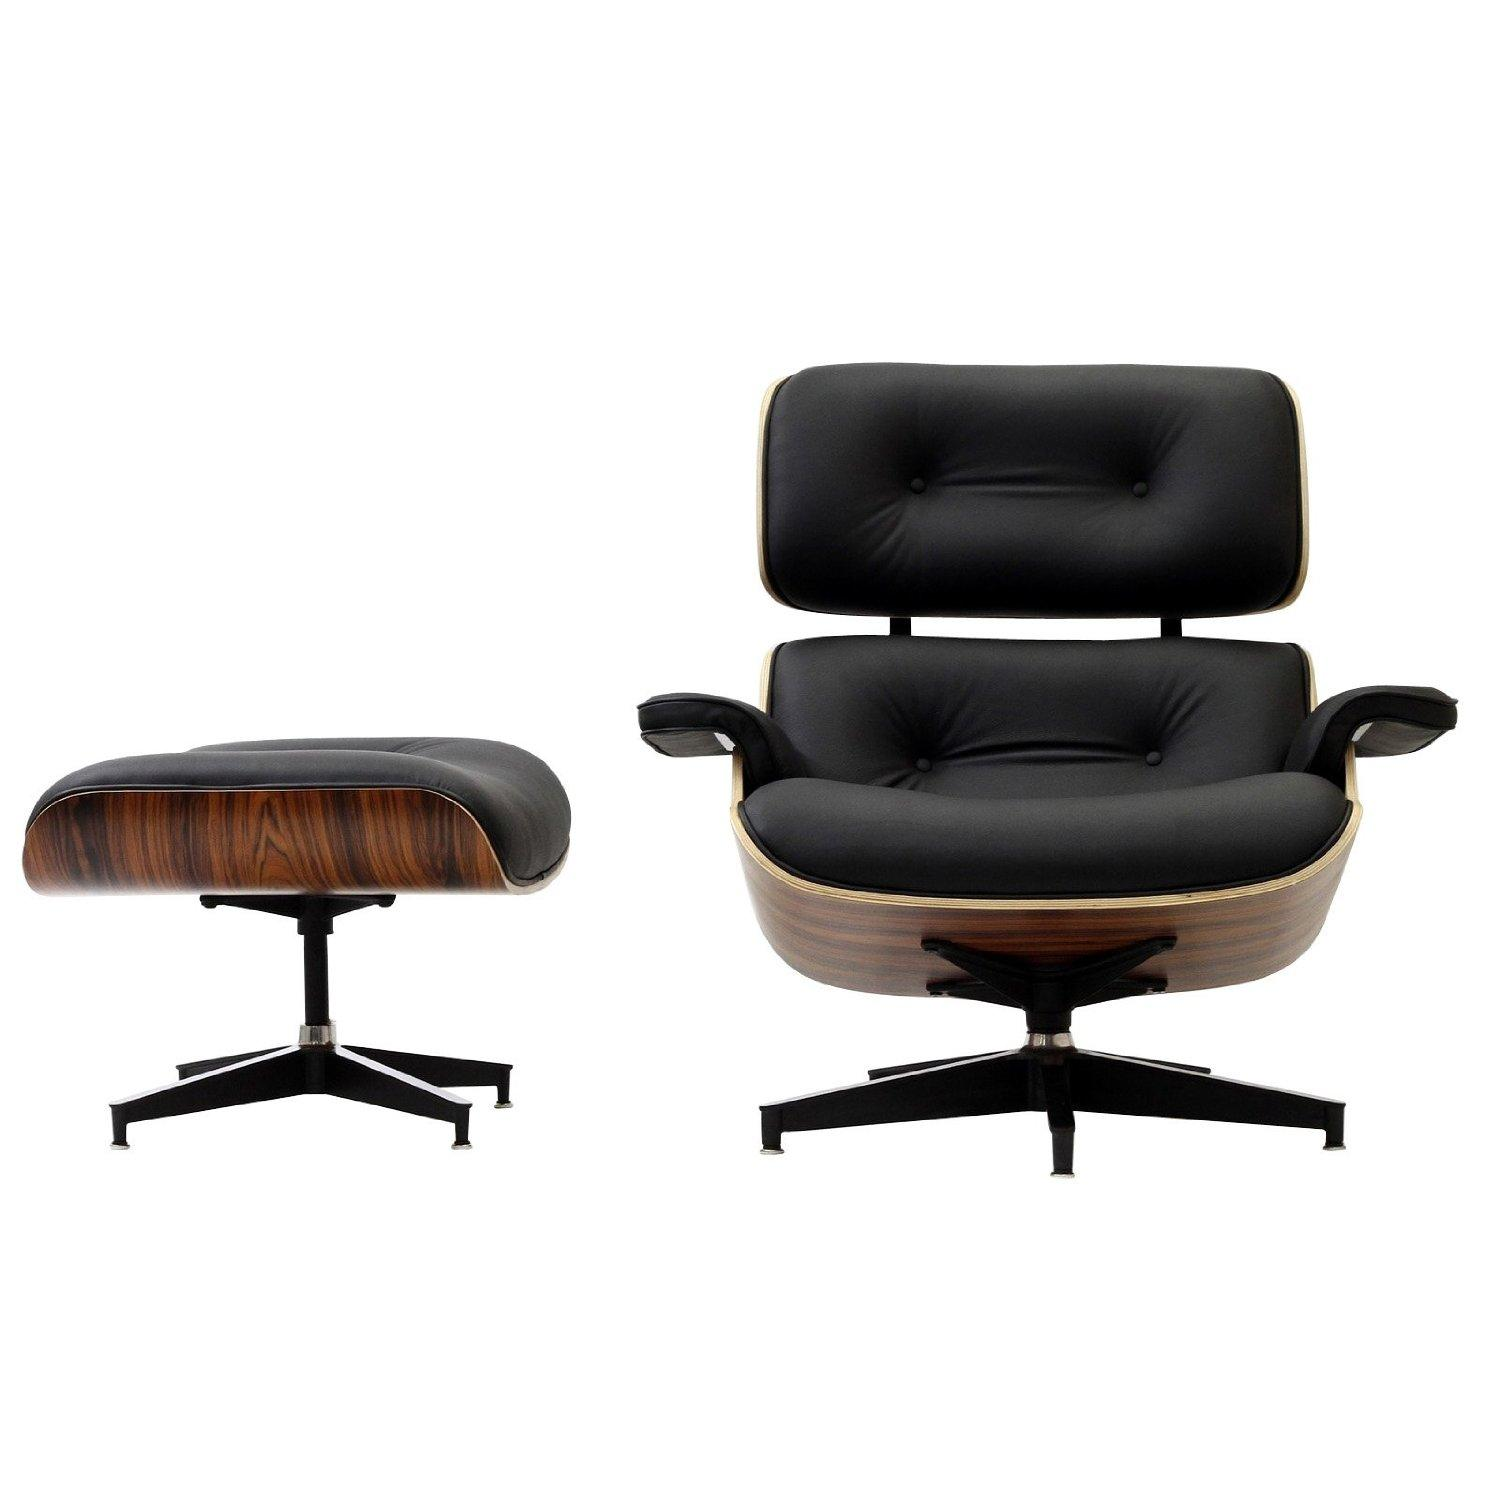 LexMod Eaze Lounge Chair In Black Leather And Palisander